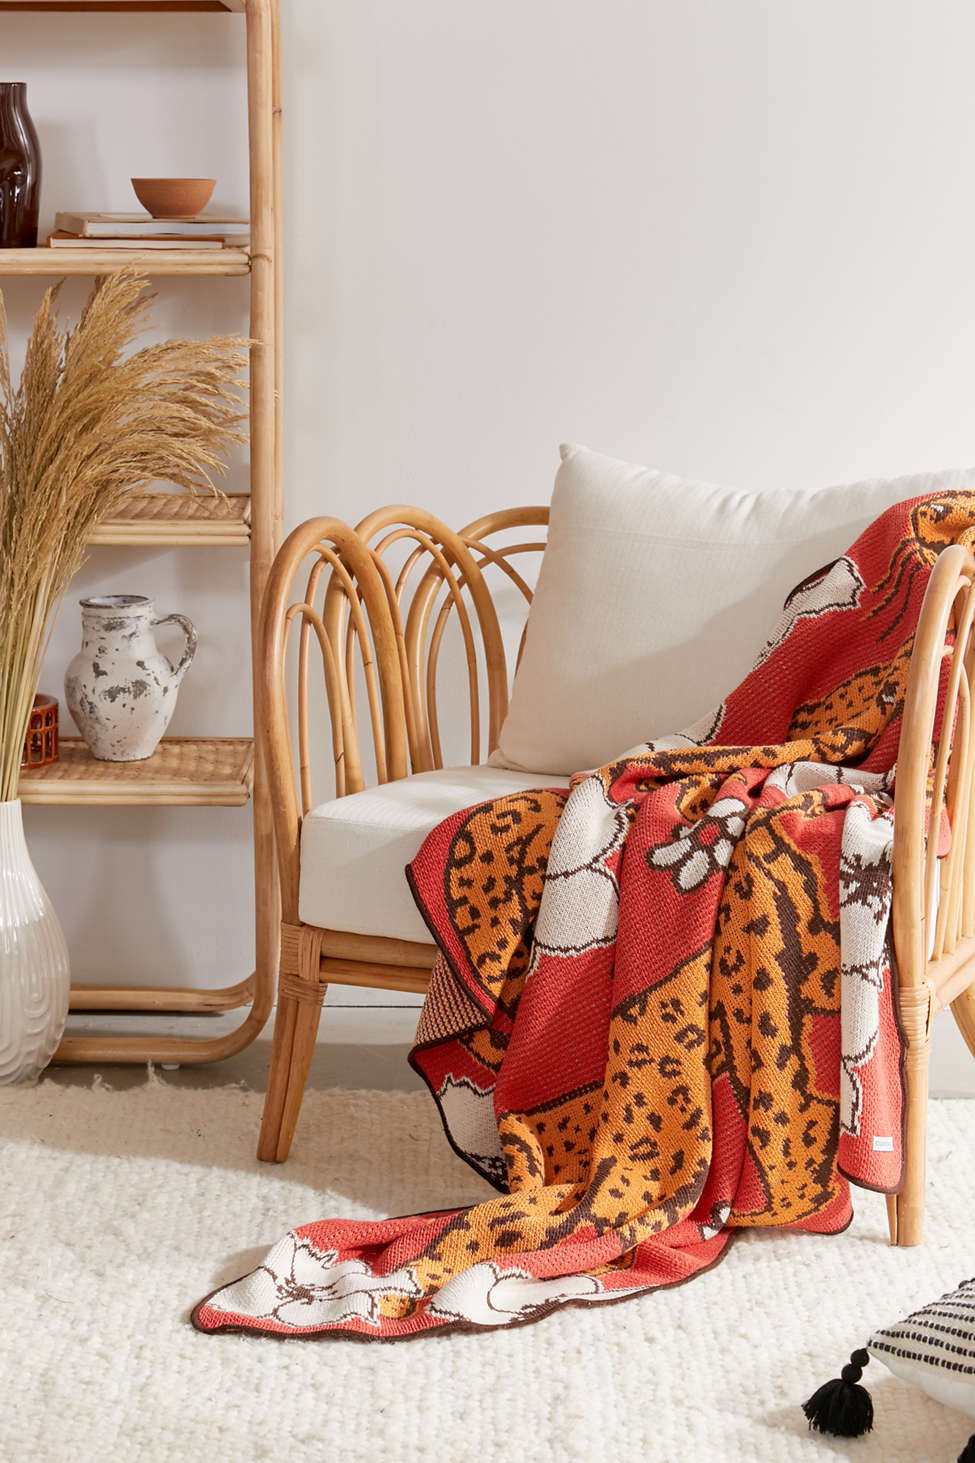 Slide View: 2: Calhoun & Co. Leopards In Flower Patch Throw Blanket